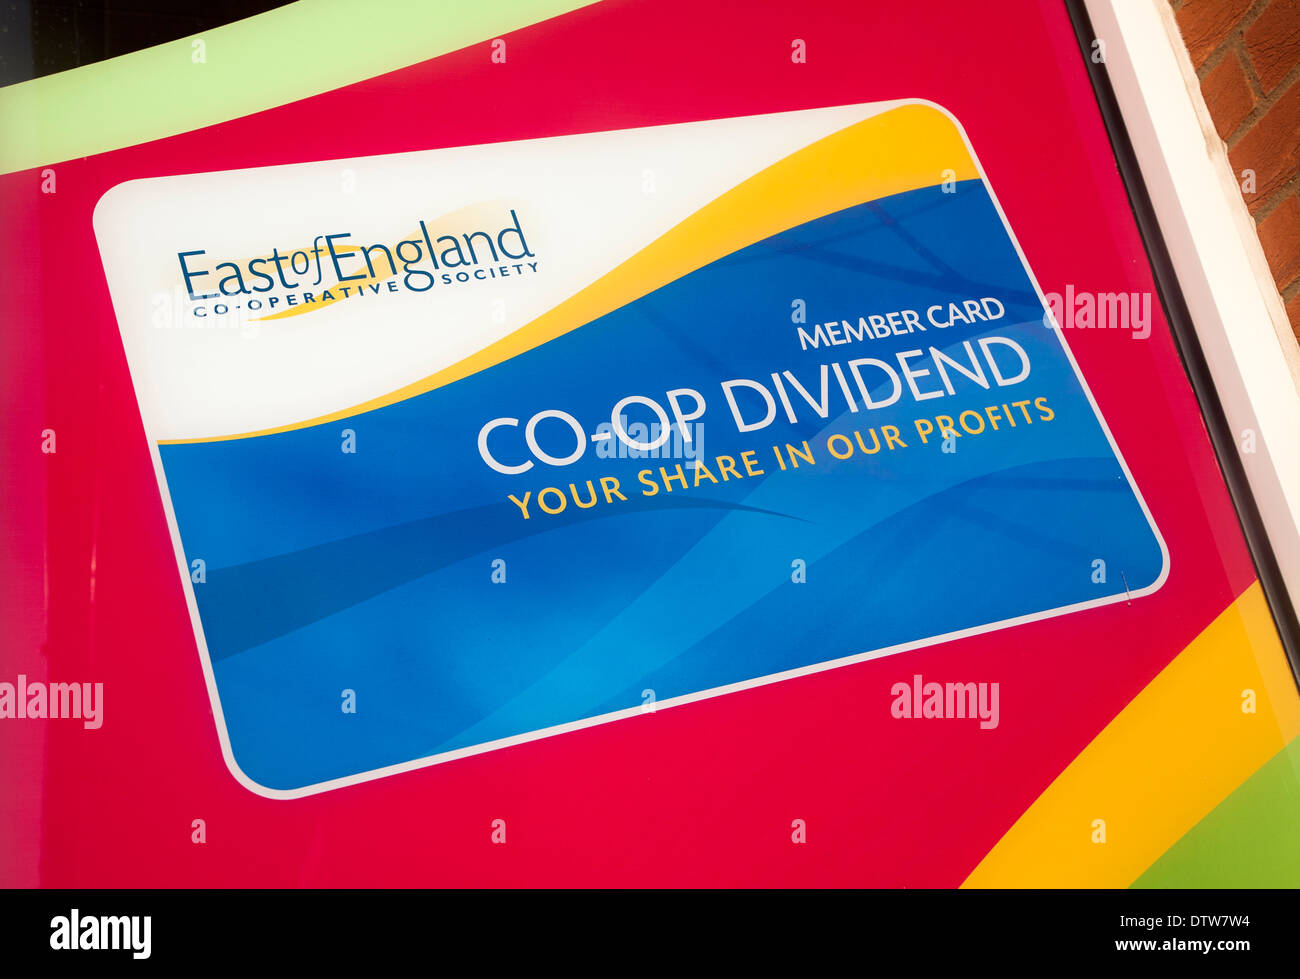 Co-op dividend profit share scheme advertised in shop window, East of England Co-operative Society, Suffolk, England - Stock Image